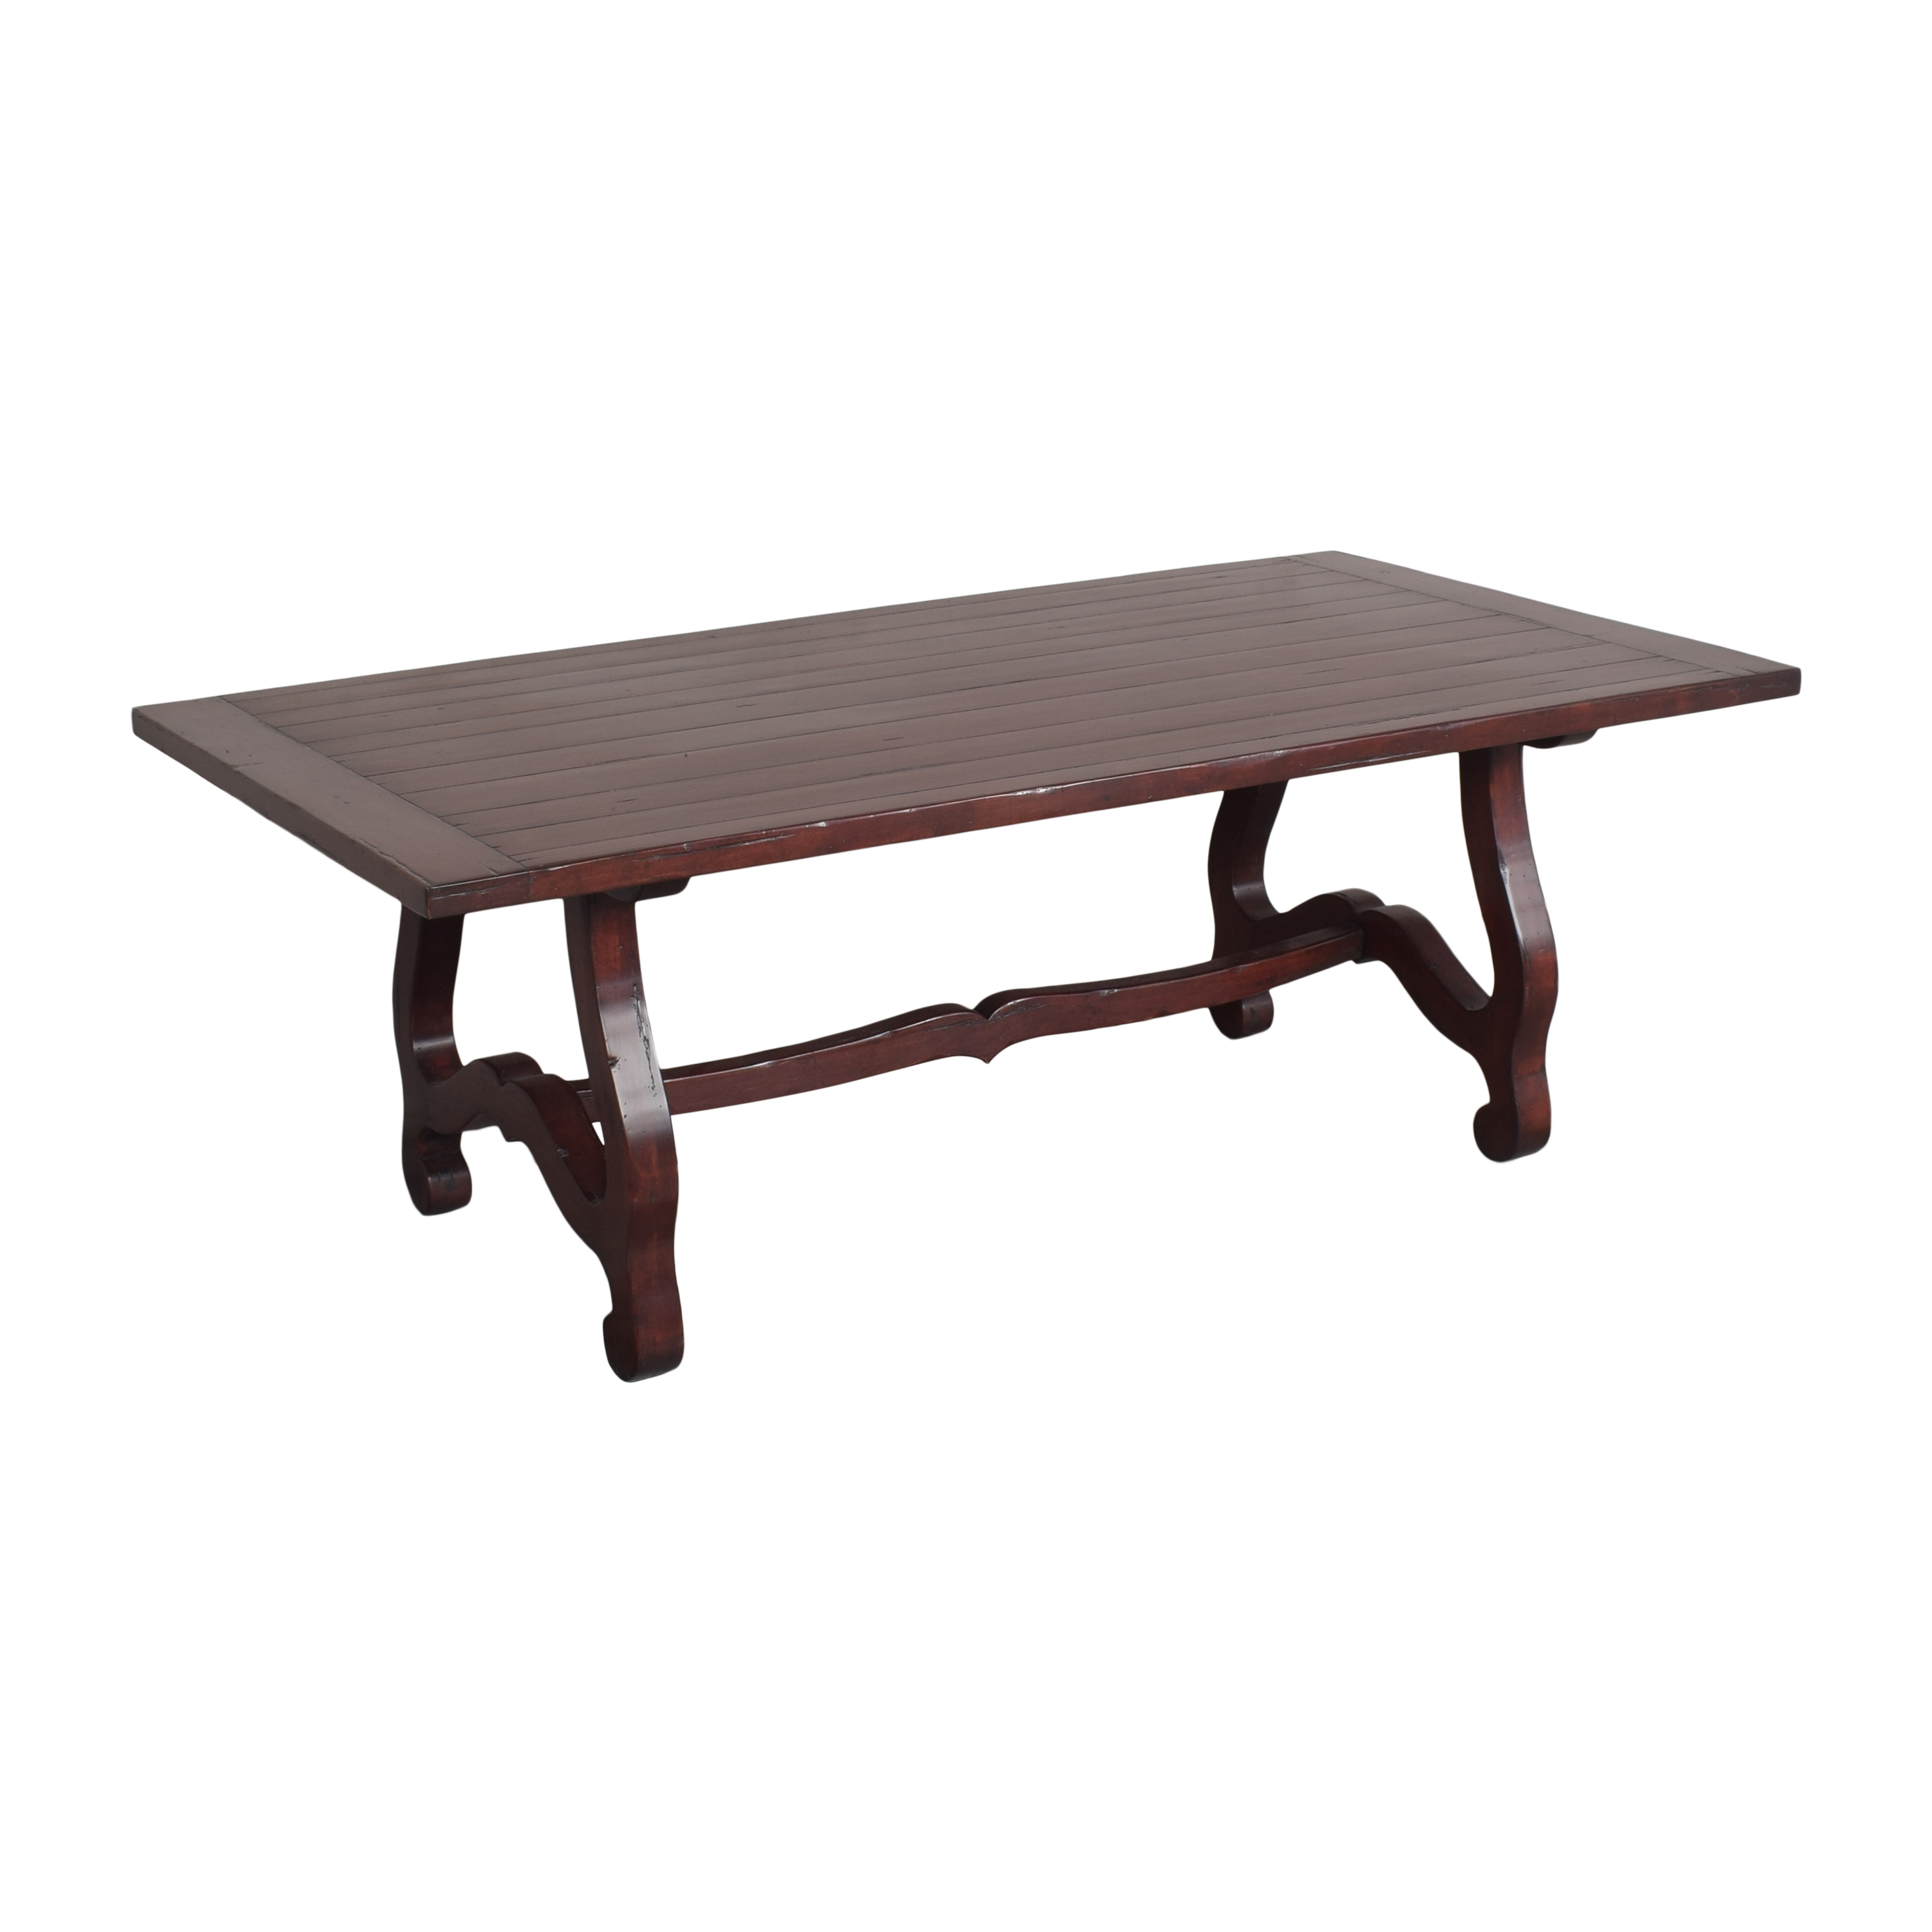 Guy Chaddock & Co. Guy Chaddock & Co Country English Trestle Dining Table used